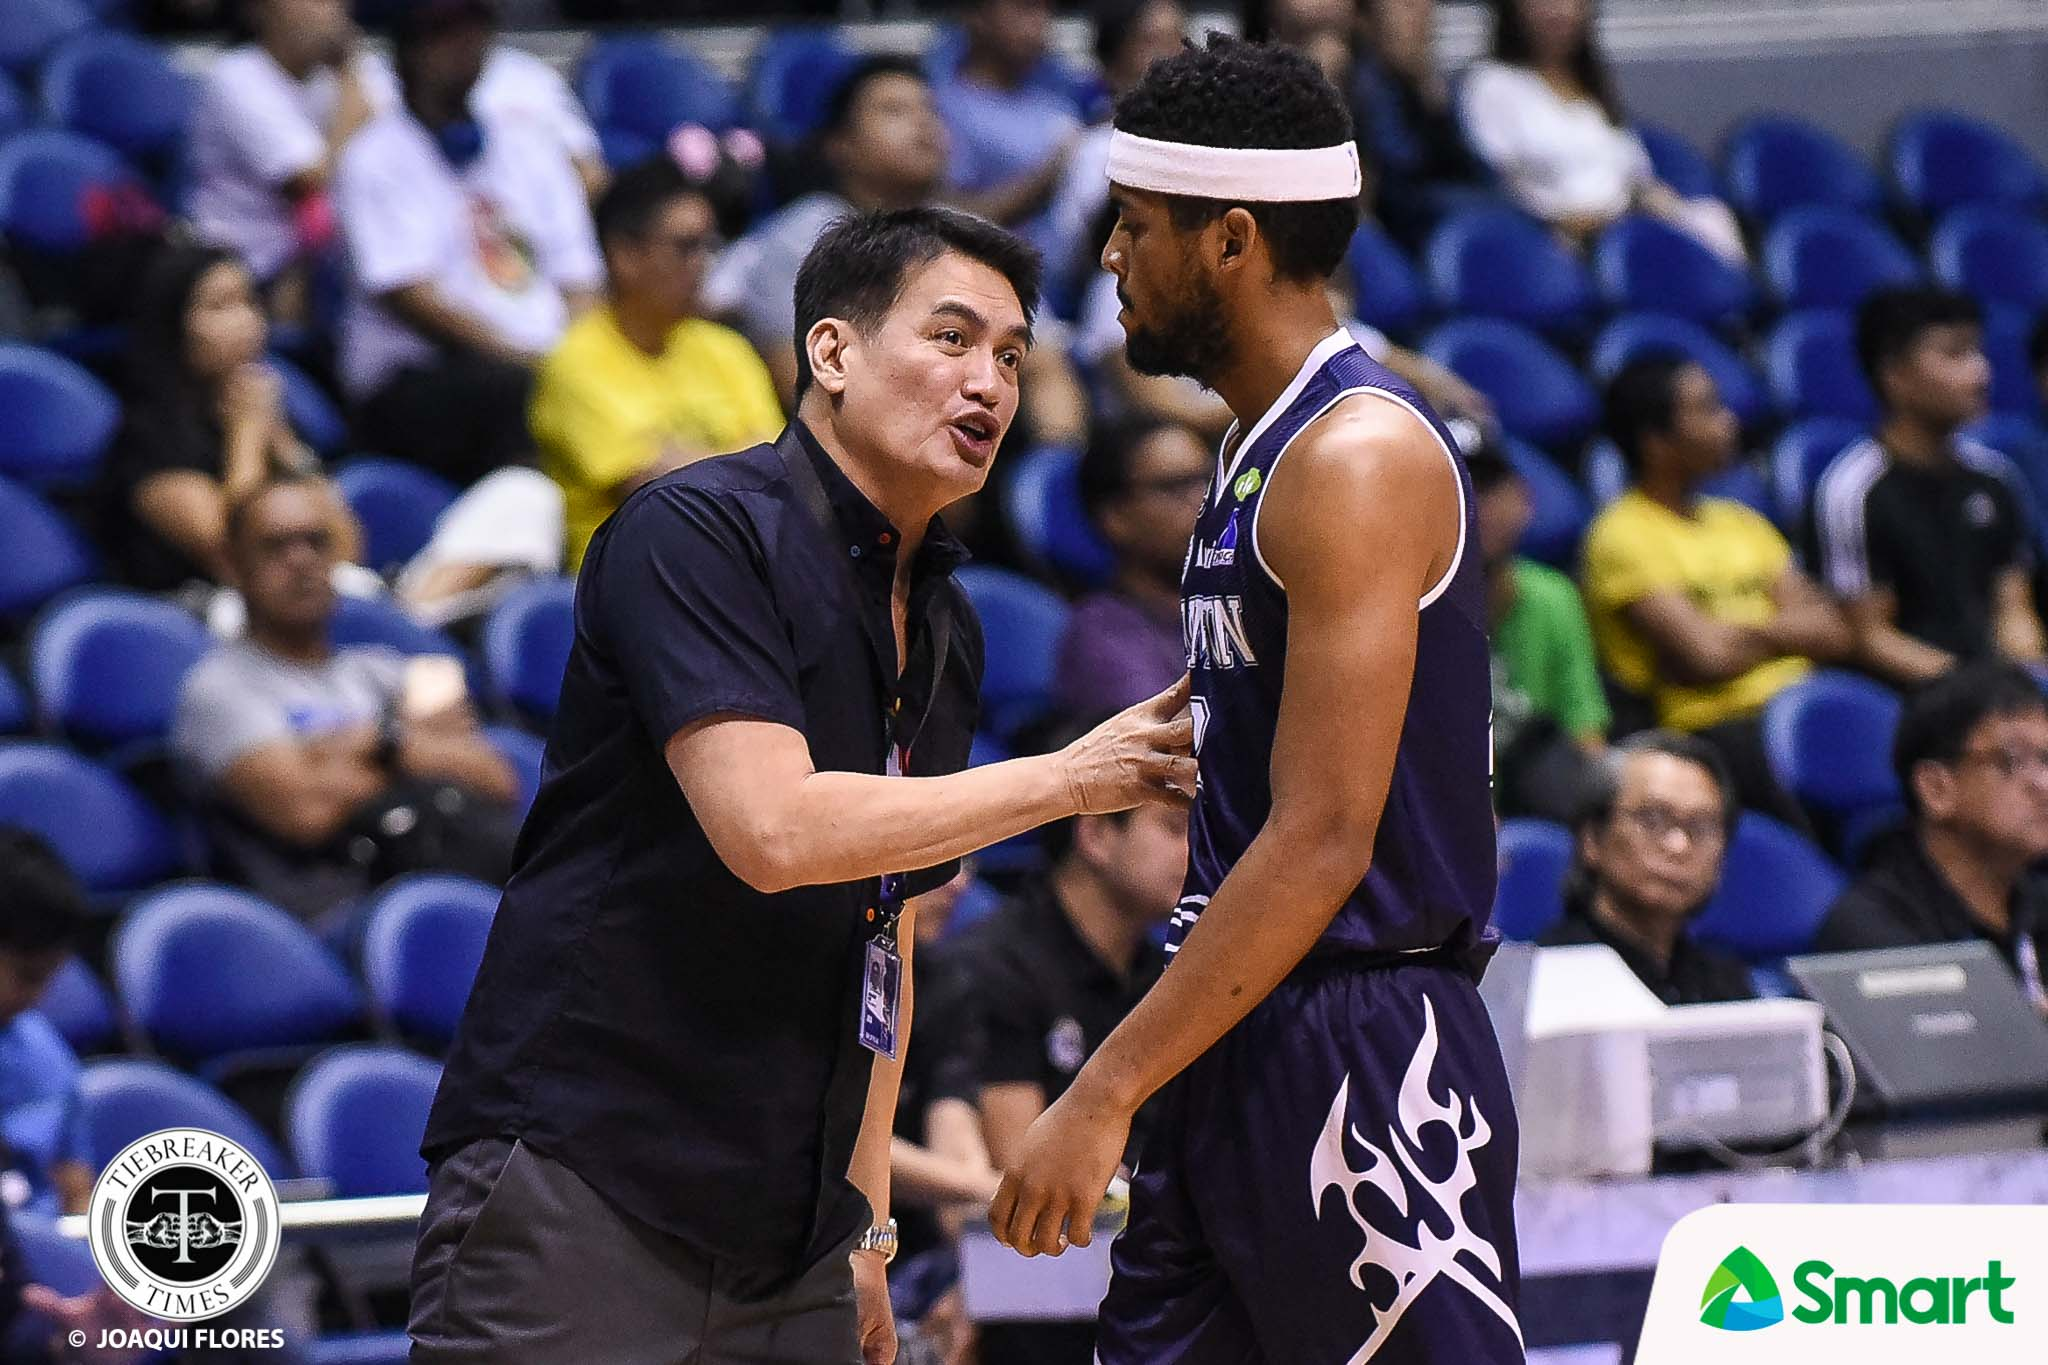 Tiebreaker Times Adamson not celebrating Final Four berth, school milestone AdU Basketball News UAAP  UAAP Season 81 Men's Basketball UAAP Season 81 Simon Camacho Sean Manganti Jerrick Ahanmisi Franz Pumaren Adamson Men's Basketball